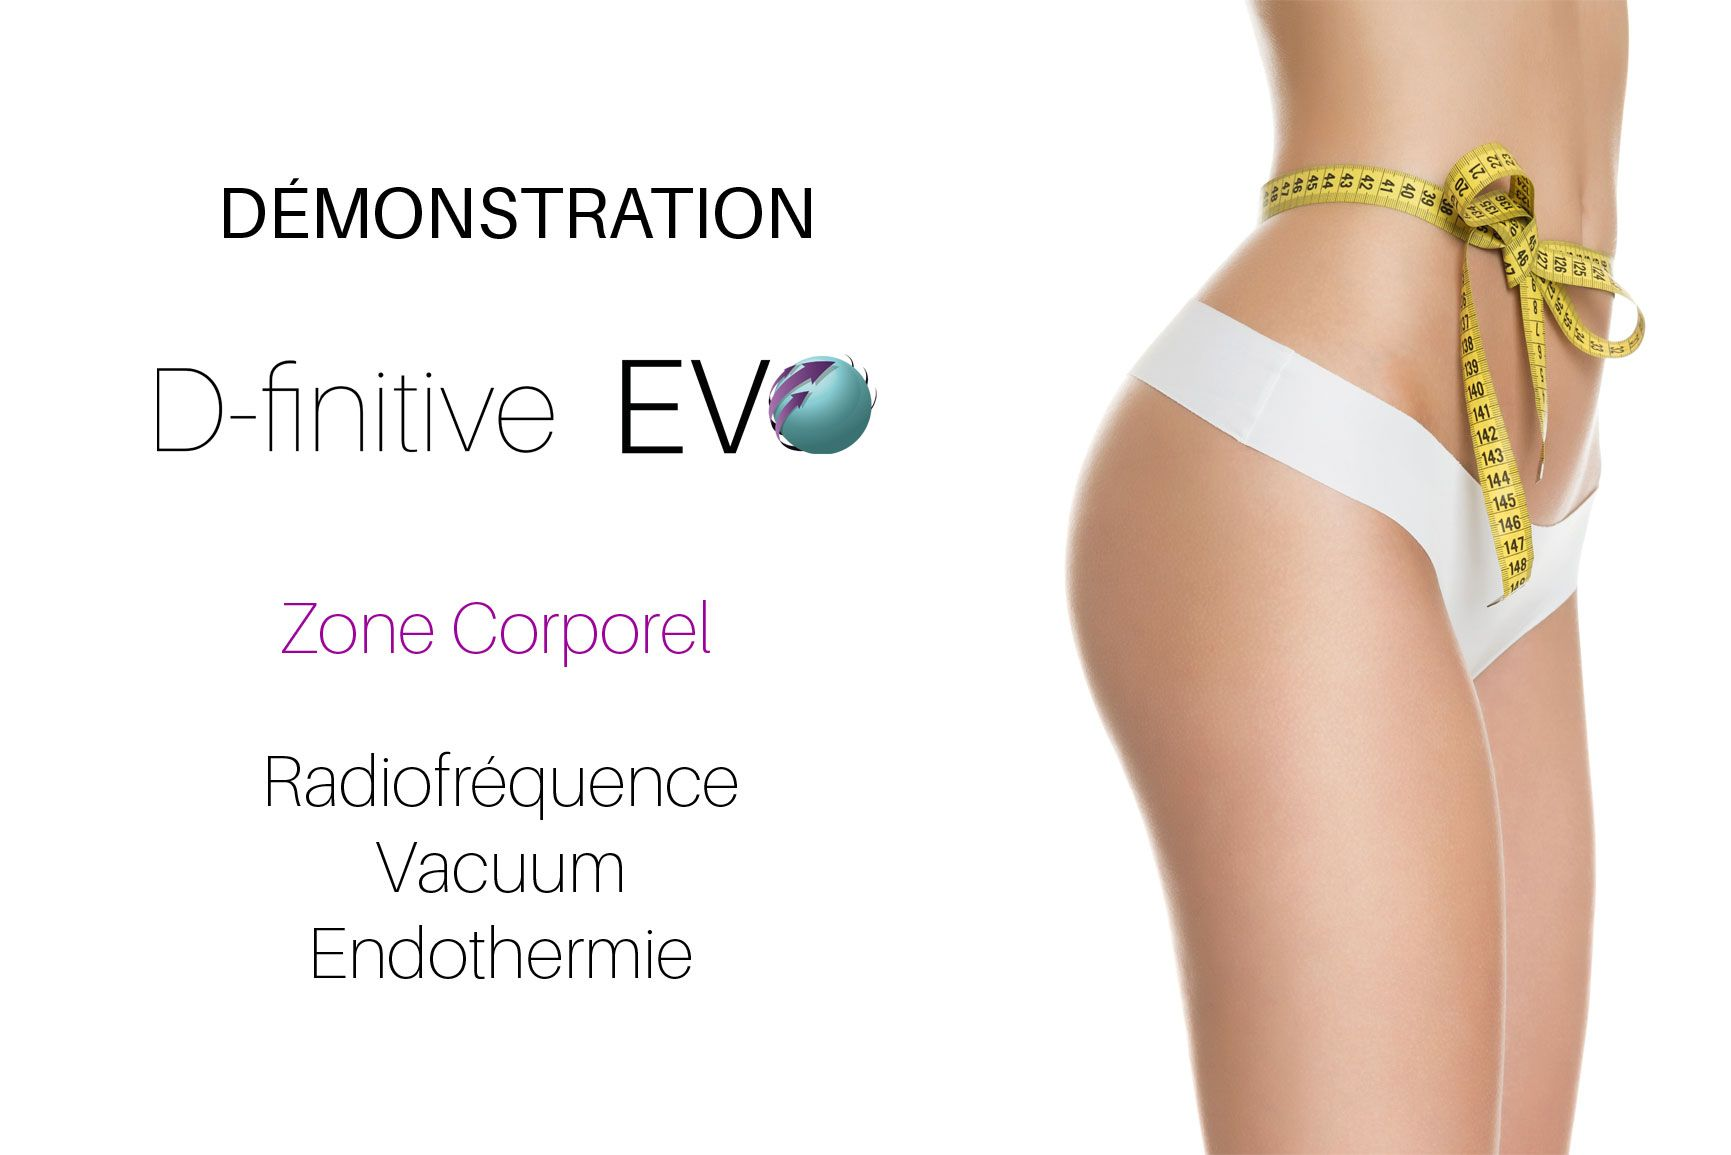 Demonstration-D-FinitiveEVO-Radiofrequence-Vacuum-Endothermie